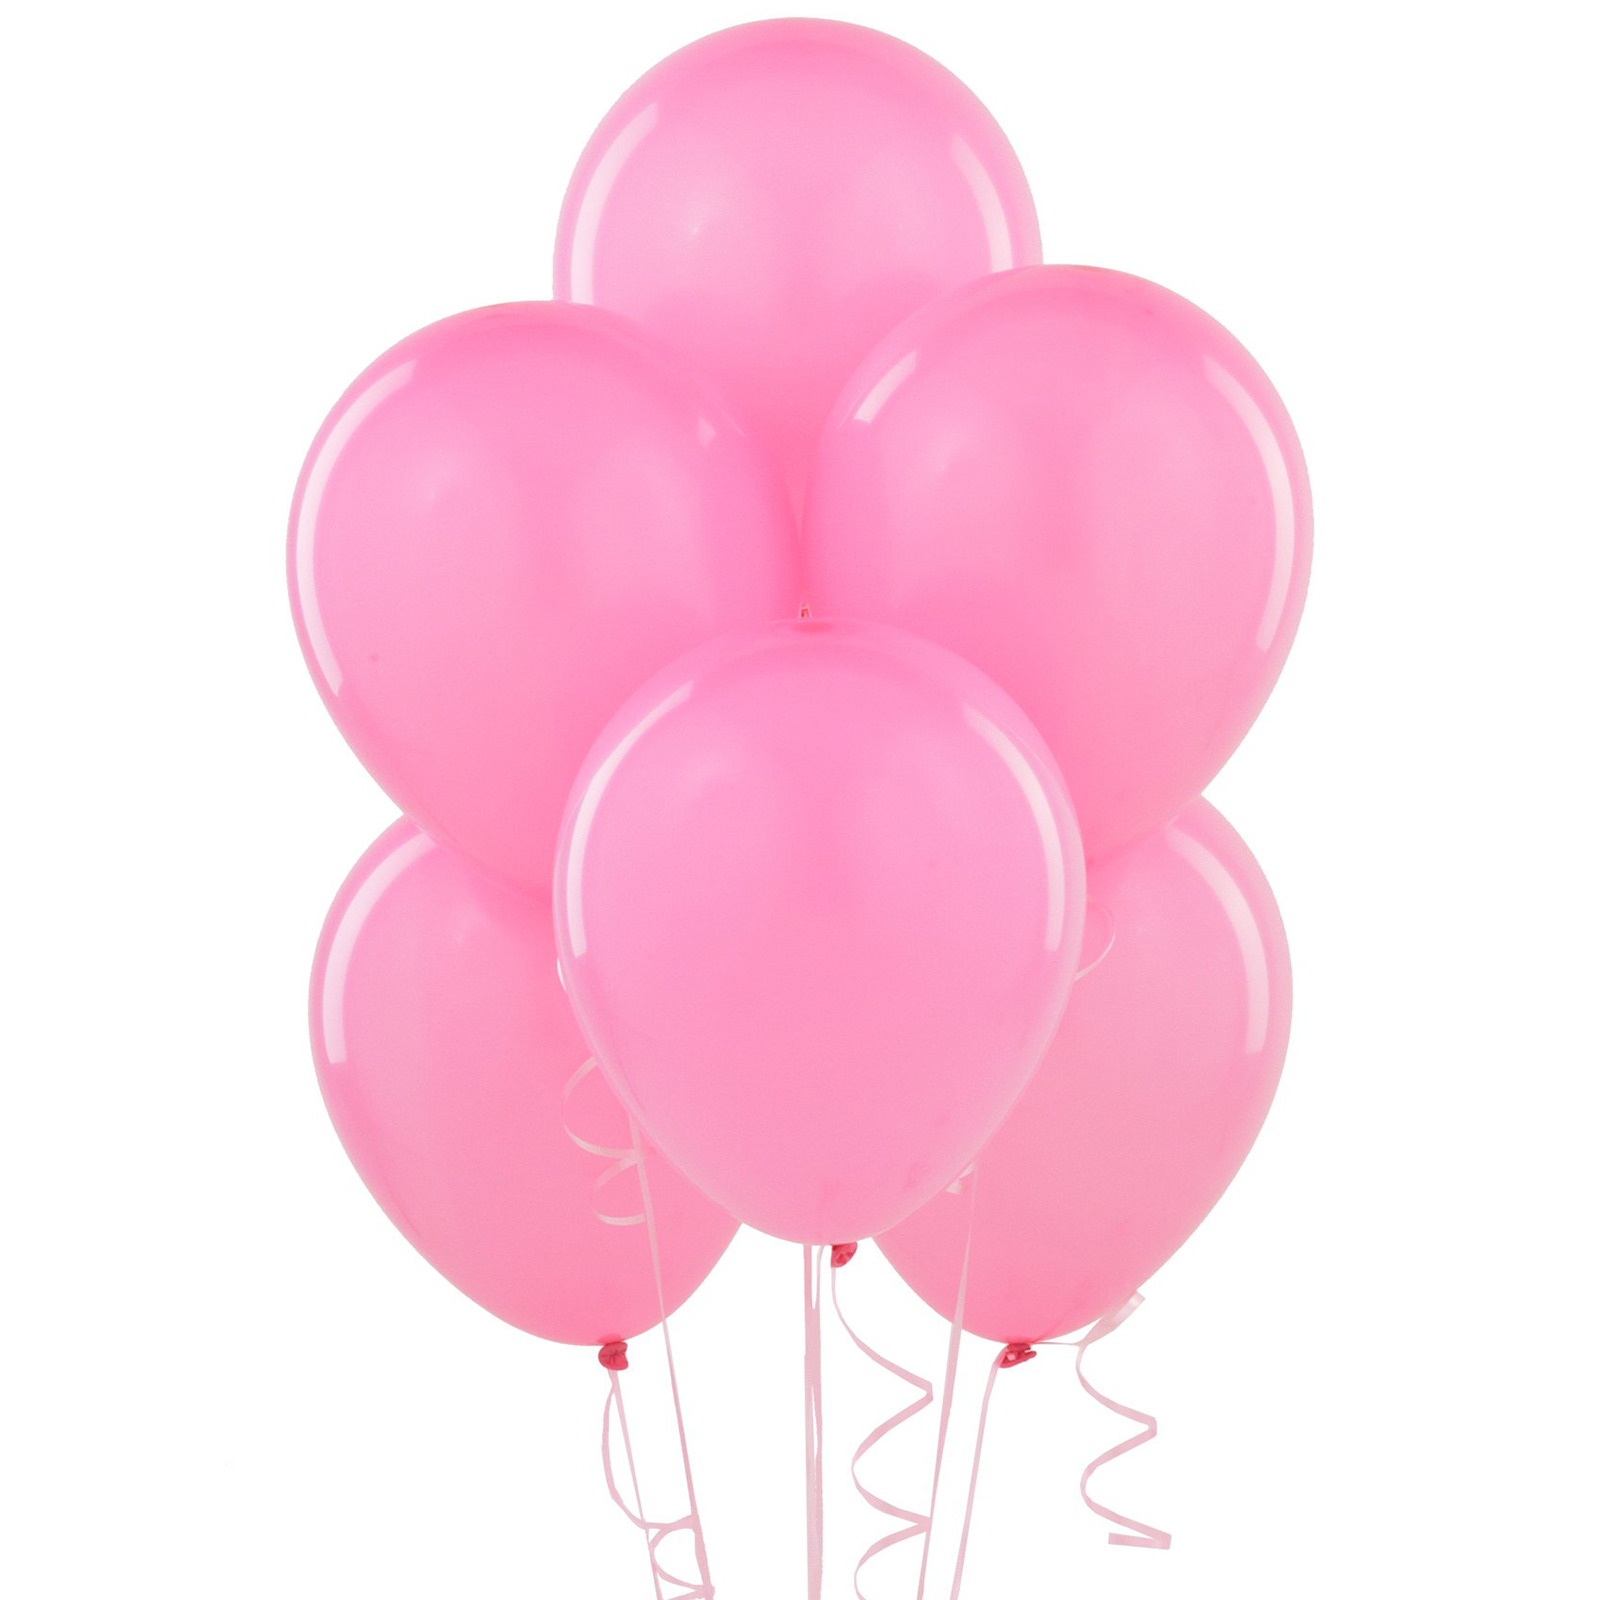 Where can you buy balloon arch kits in delaware - Where Can You Buy Balloon Arch Kits In Delaware 25